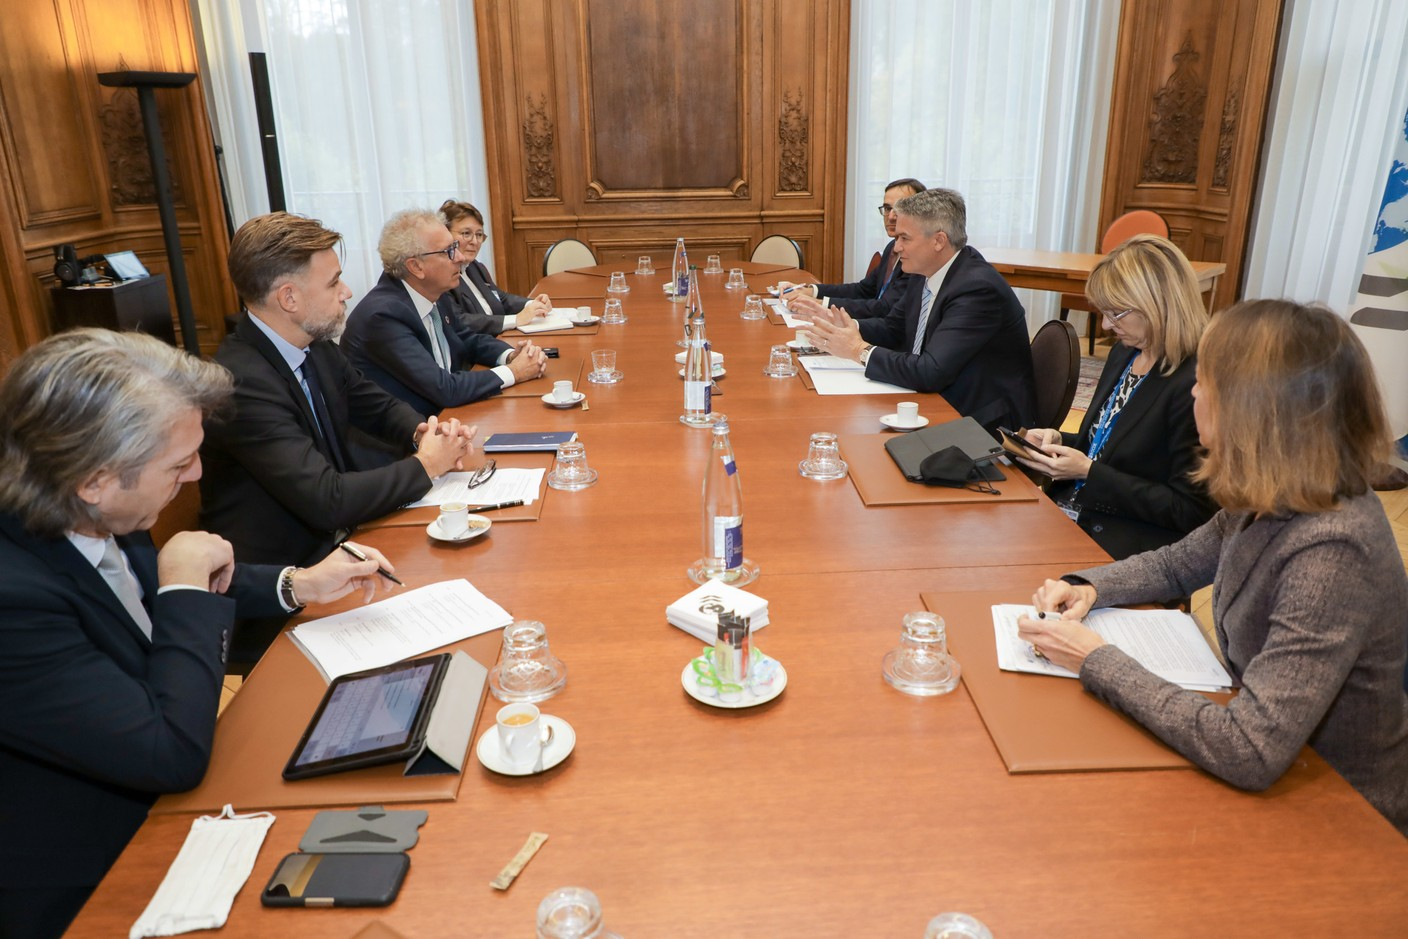 (from l. to r.) Carlo Fassbinder, Director, Tax Directorate, Ministry of Finance; Franz Fayot, Minister of the Economy; Pierre Gramegna, Minister of Finance; Martine Schommer, Ambassador of the Grand Duchy of Luxembourg in Paris; n. c.; Mathias Cormann, Secretary General of the Organisation for Economic Co-operation and Development (OECD); n.c.; Laurence Boone, Chief Economist of the Organisation for Economic Co-operation and Development (OECD)Translated with www.DeepL.com/Translator (free version) SIP/LUC DEFLORENNE